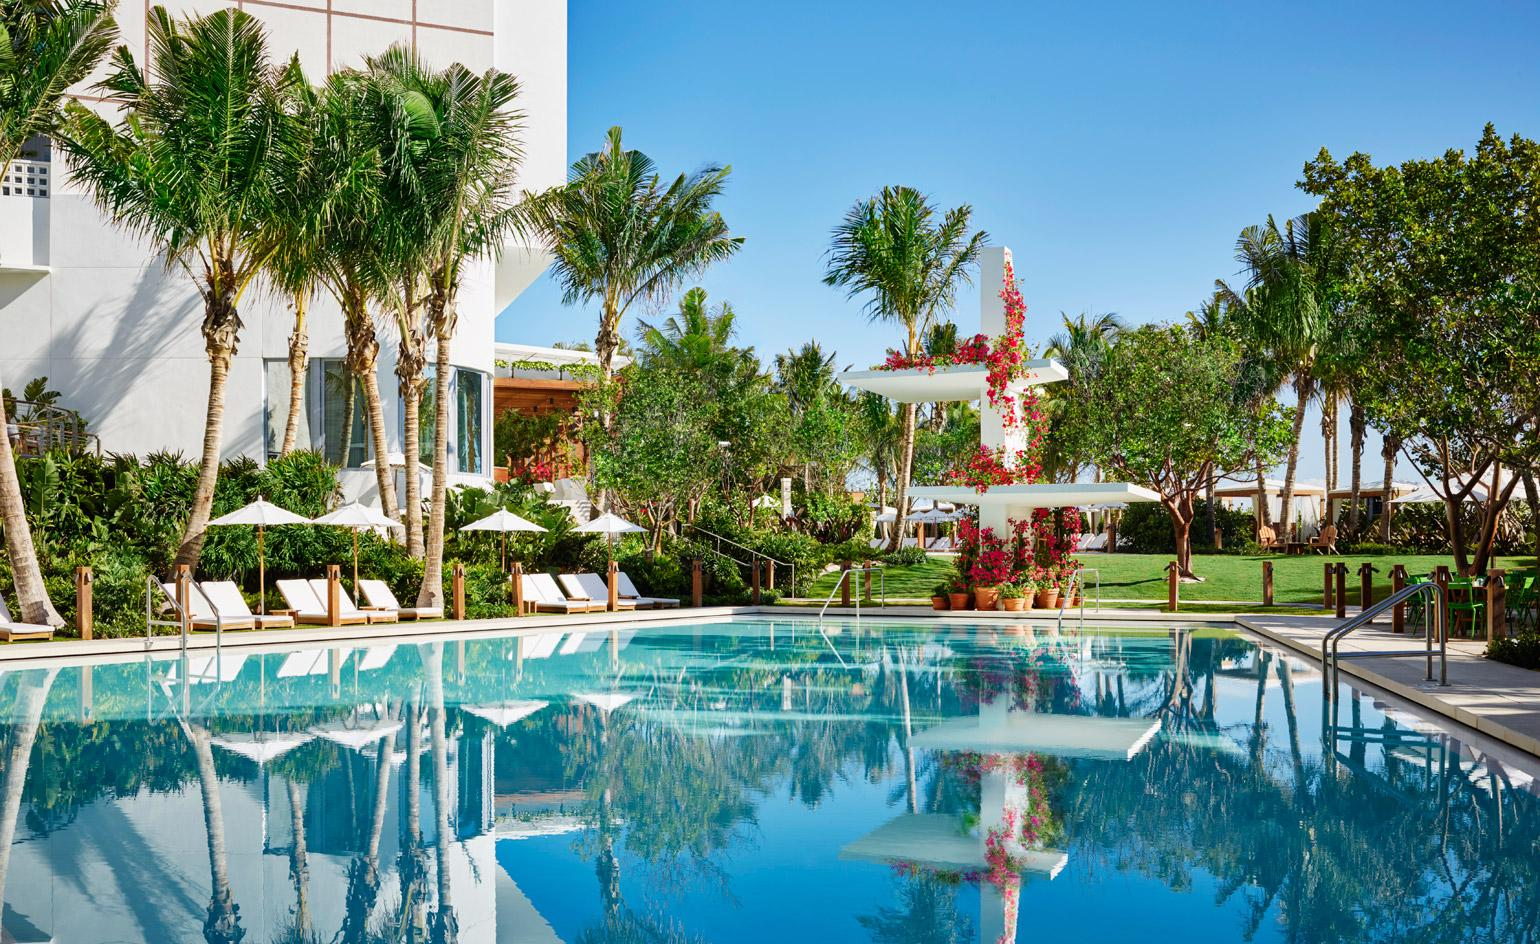 Miami Hotels Hotels Deals Near Me 2020